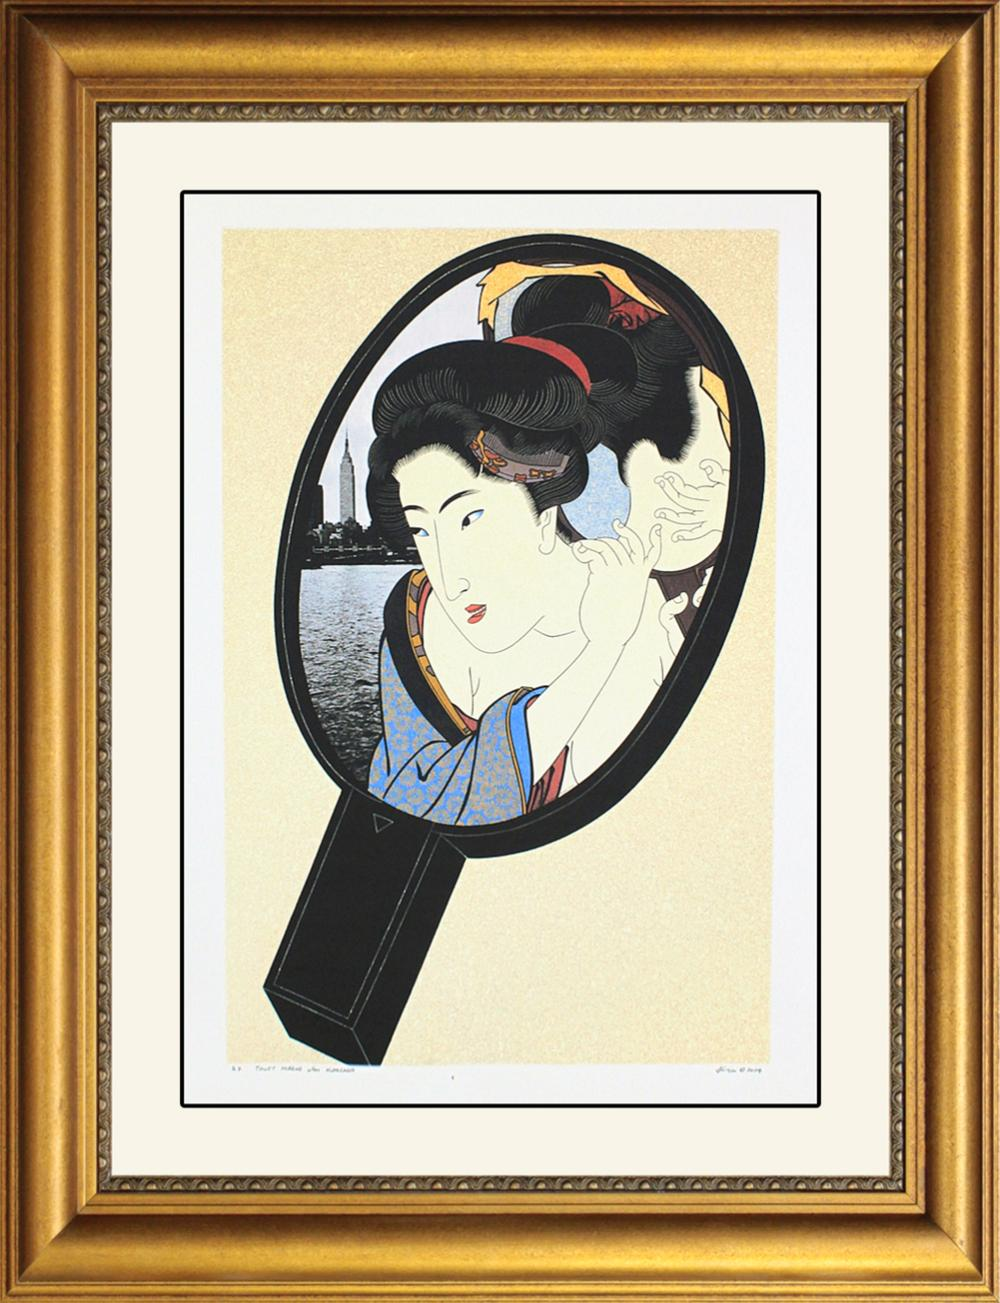 Lot 3382: Signed Artist Proof by Cuigin. Ltd Edition Serigraph